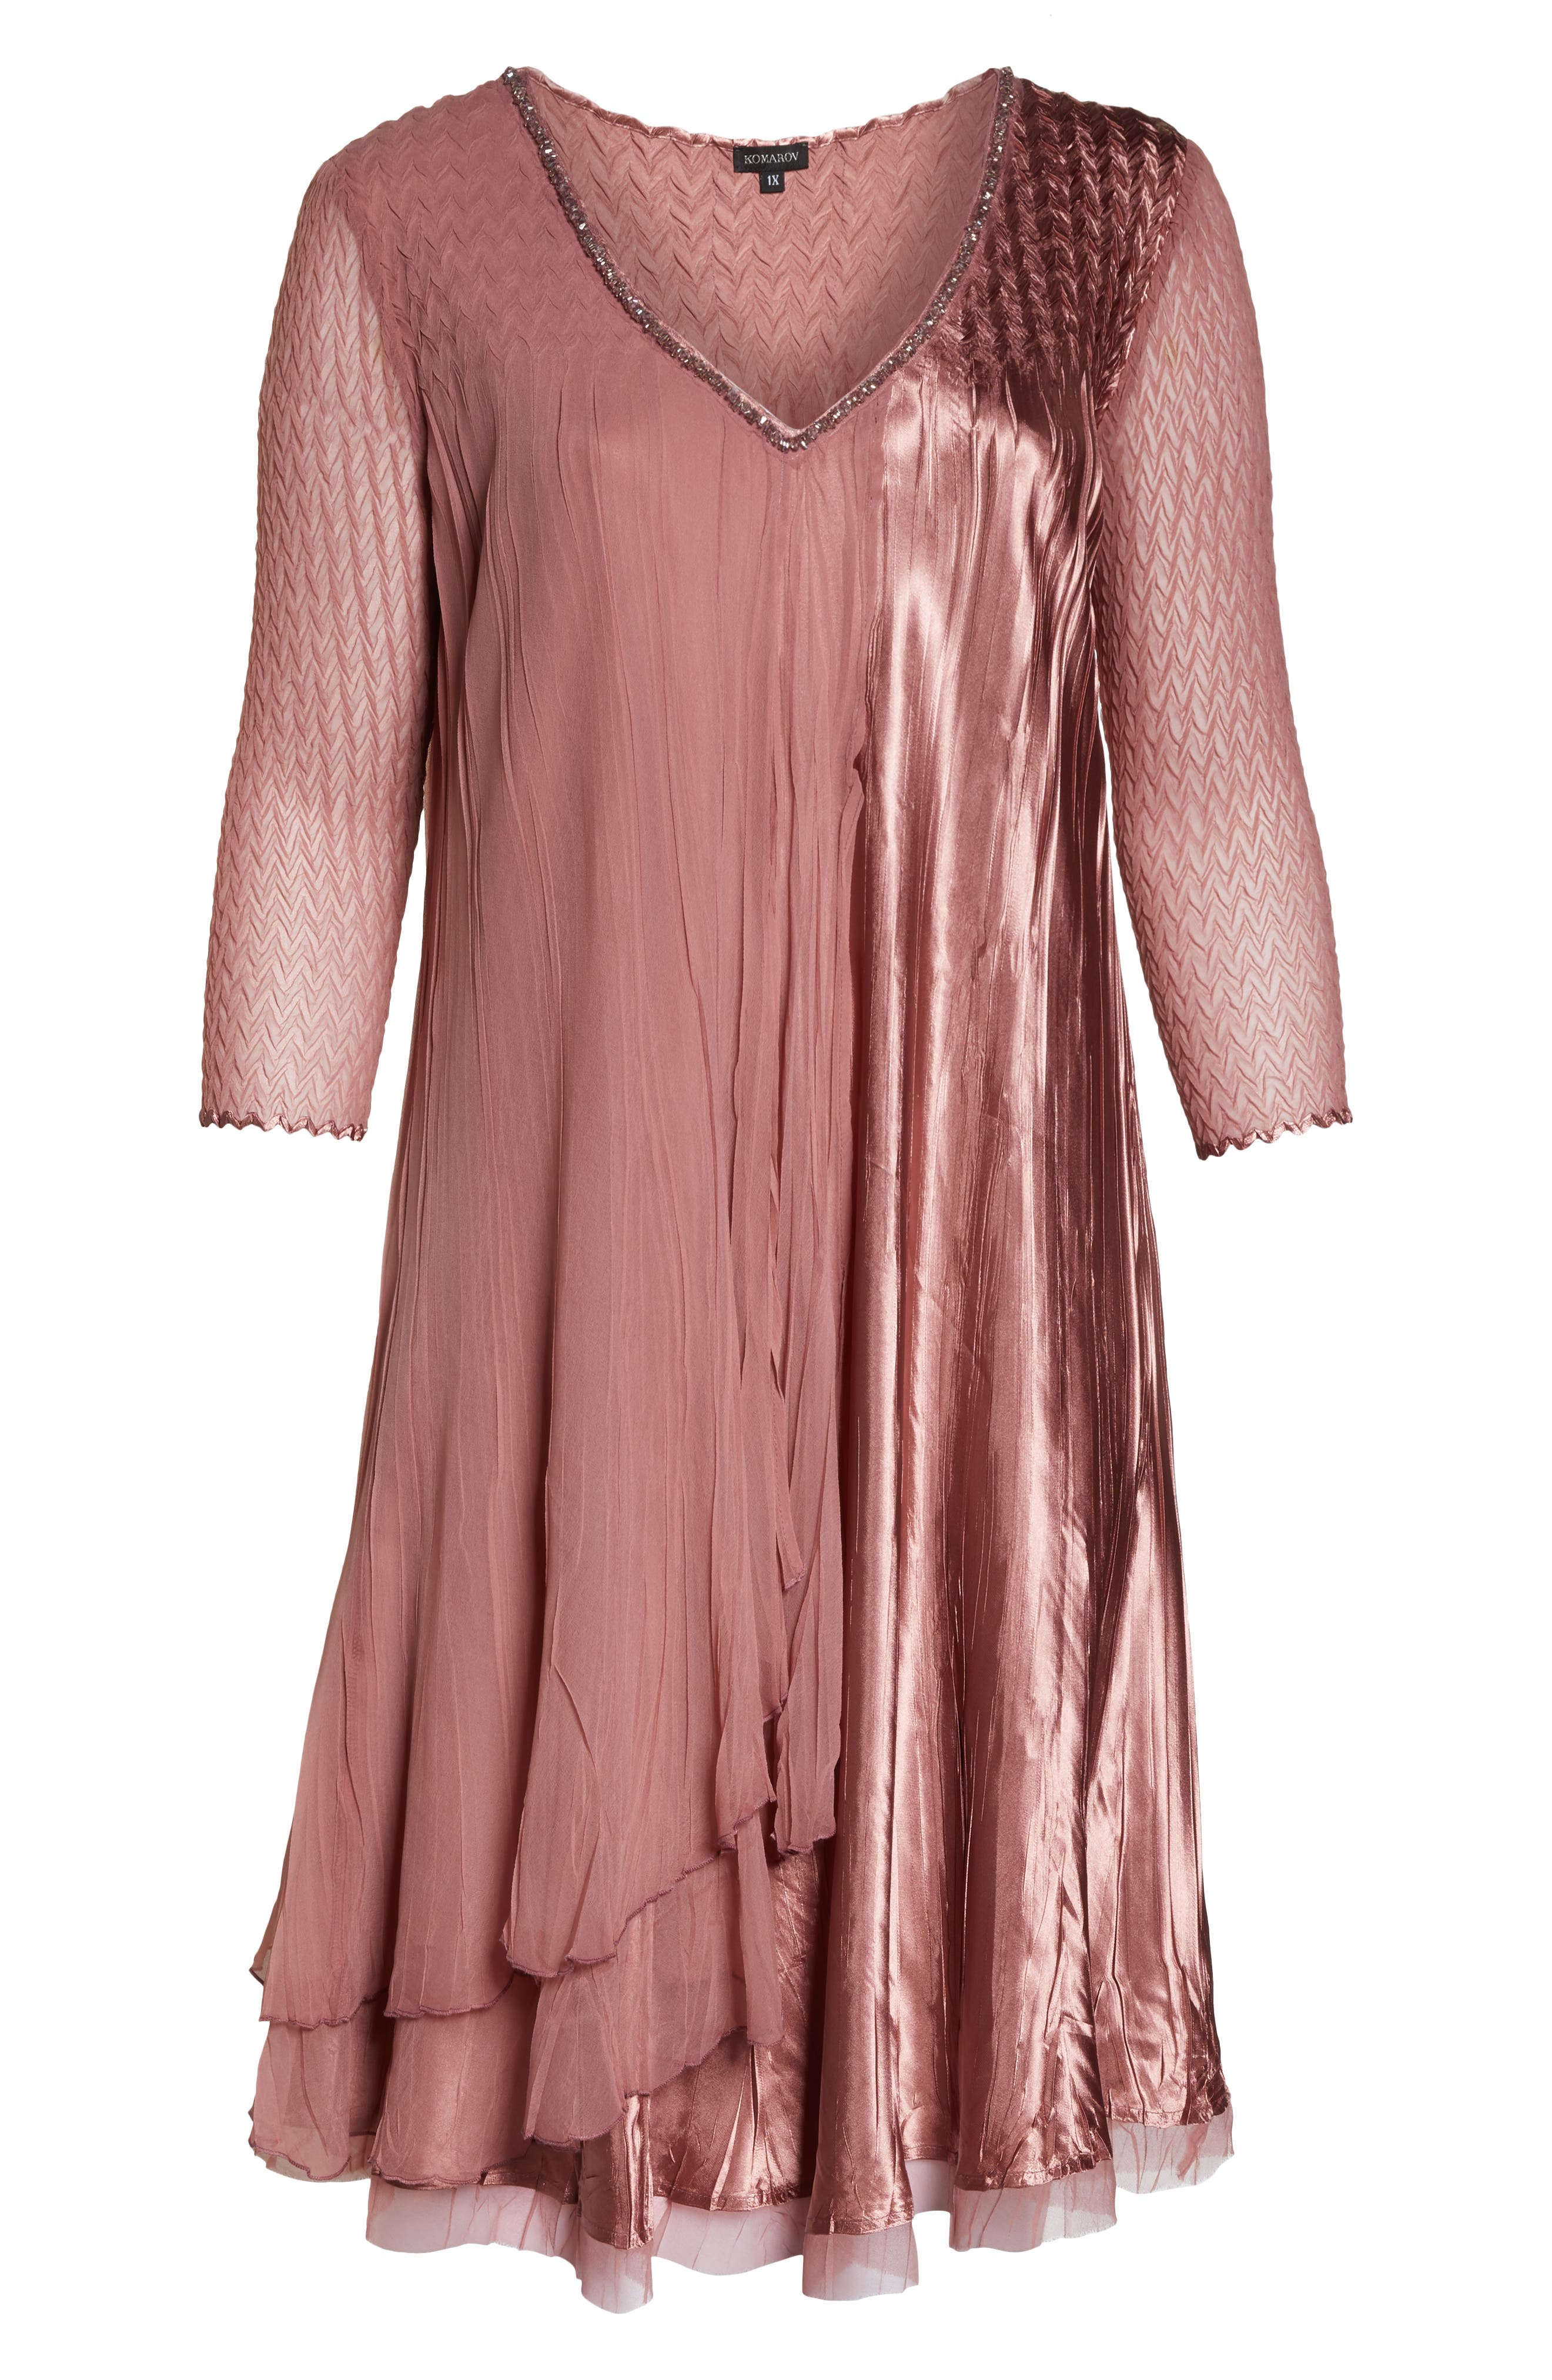 Tiered A-Line Dress,                             Alternate thumbnail 7, color,                             ROSEWOOD